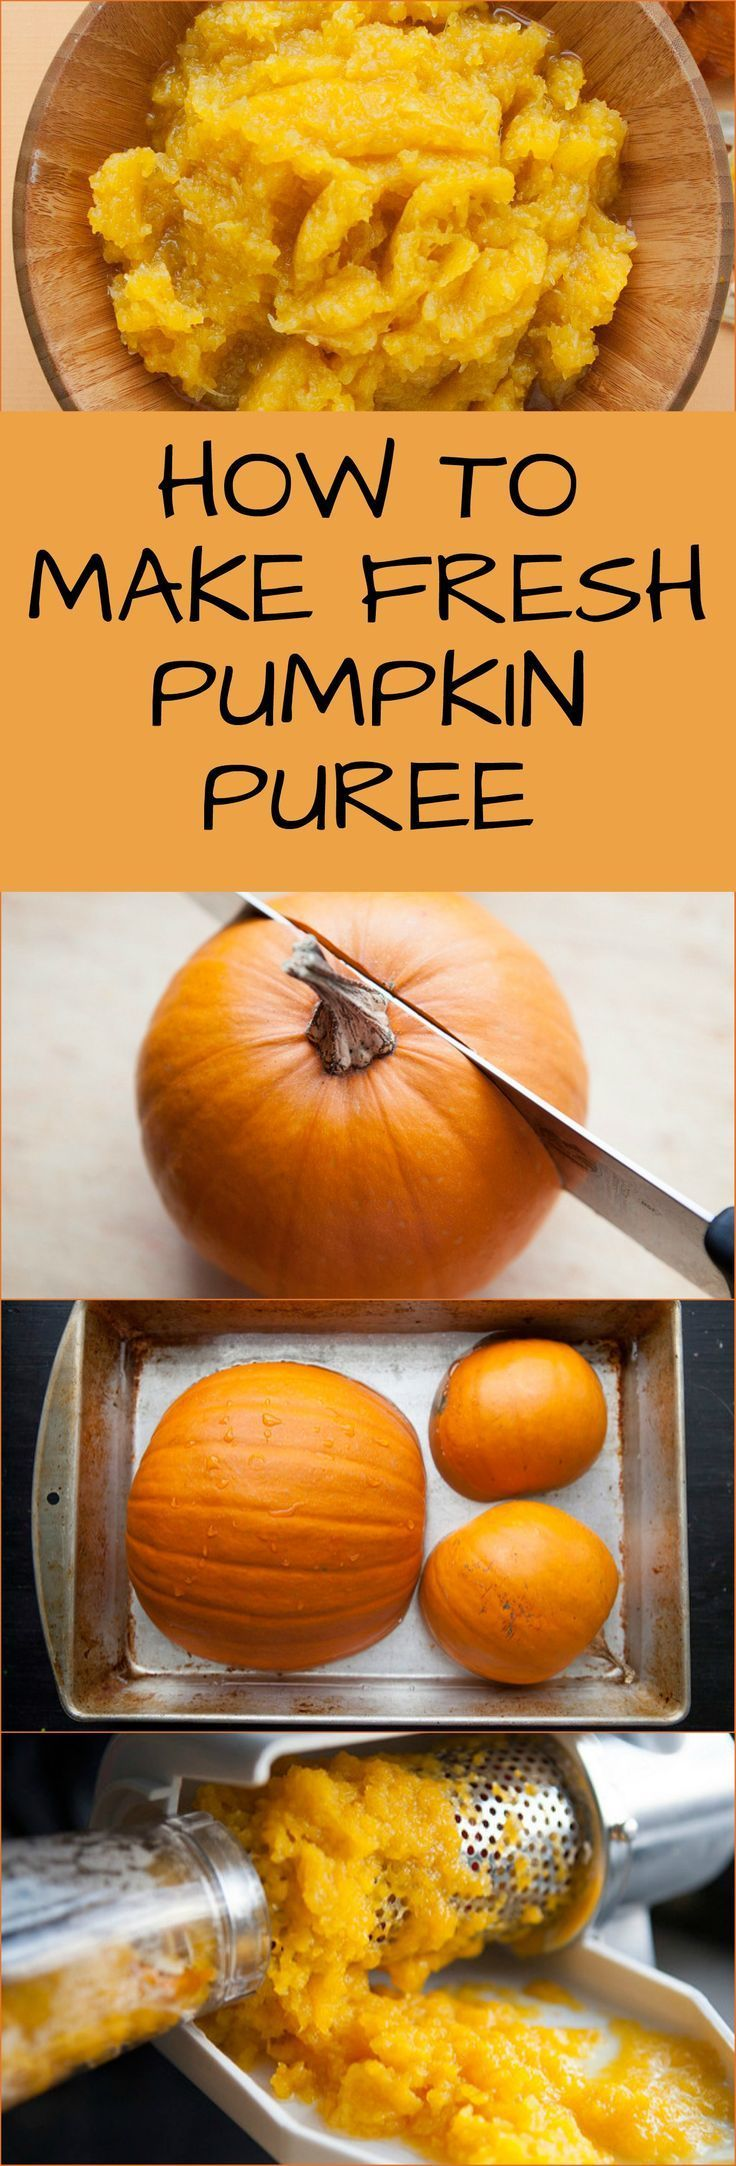 Easy Step by Step Instructions on how to make Fresh Pumpkin Puree from Pumpkins! You can use any type of pumpkin for this. Pumpkin Puree can be used in cooking and baking year round!